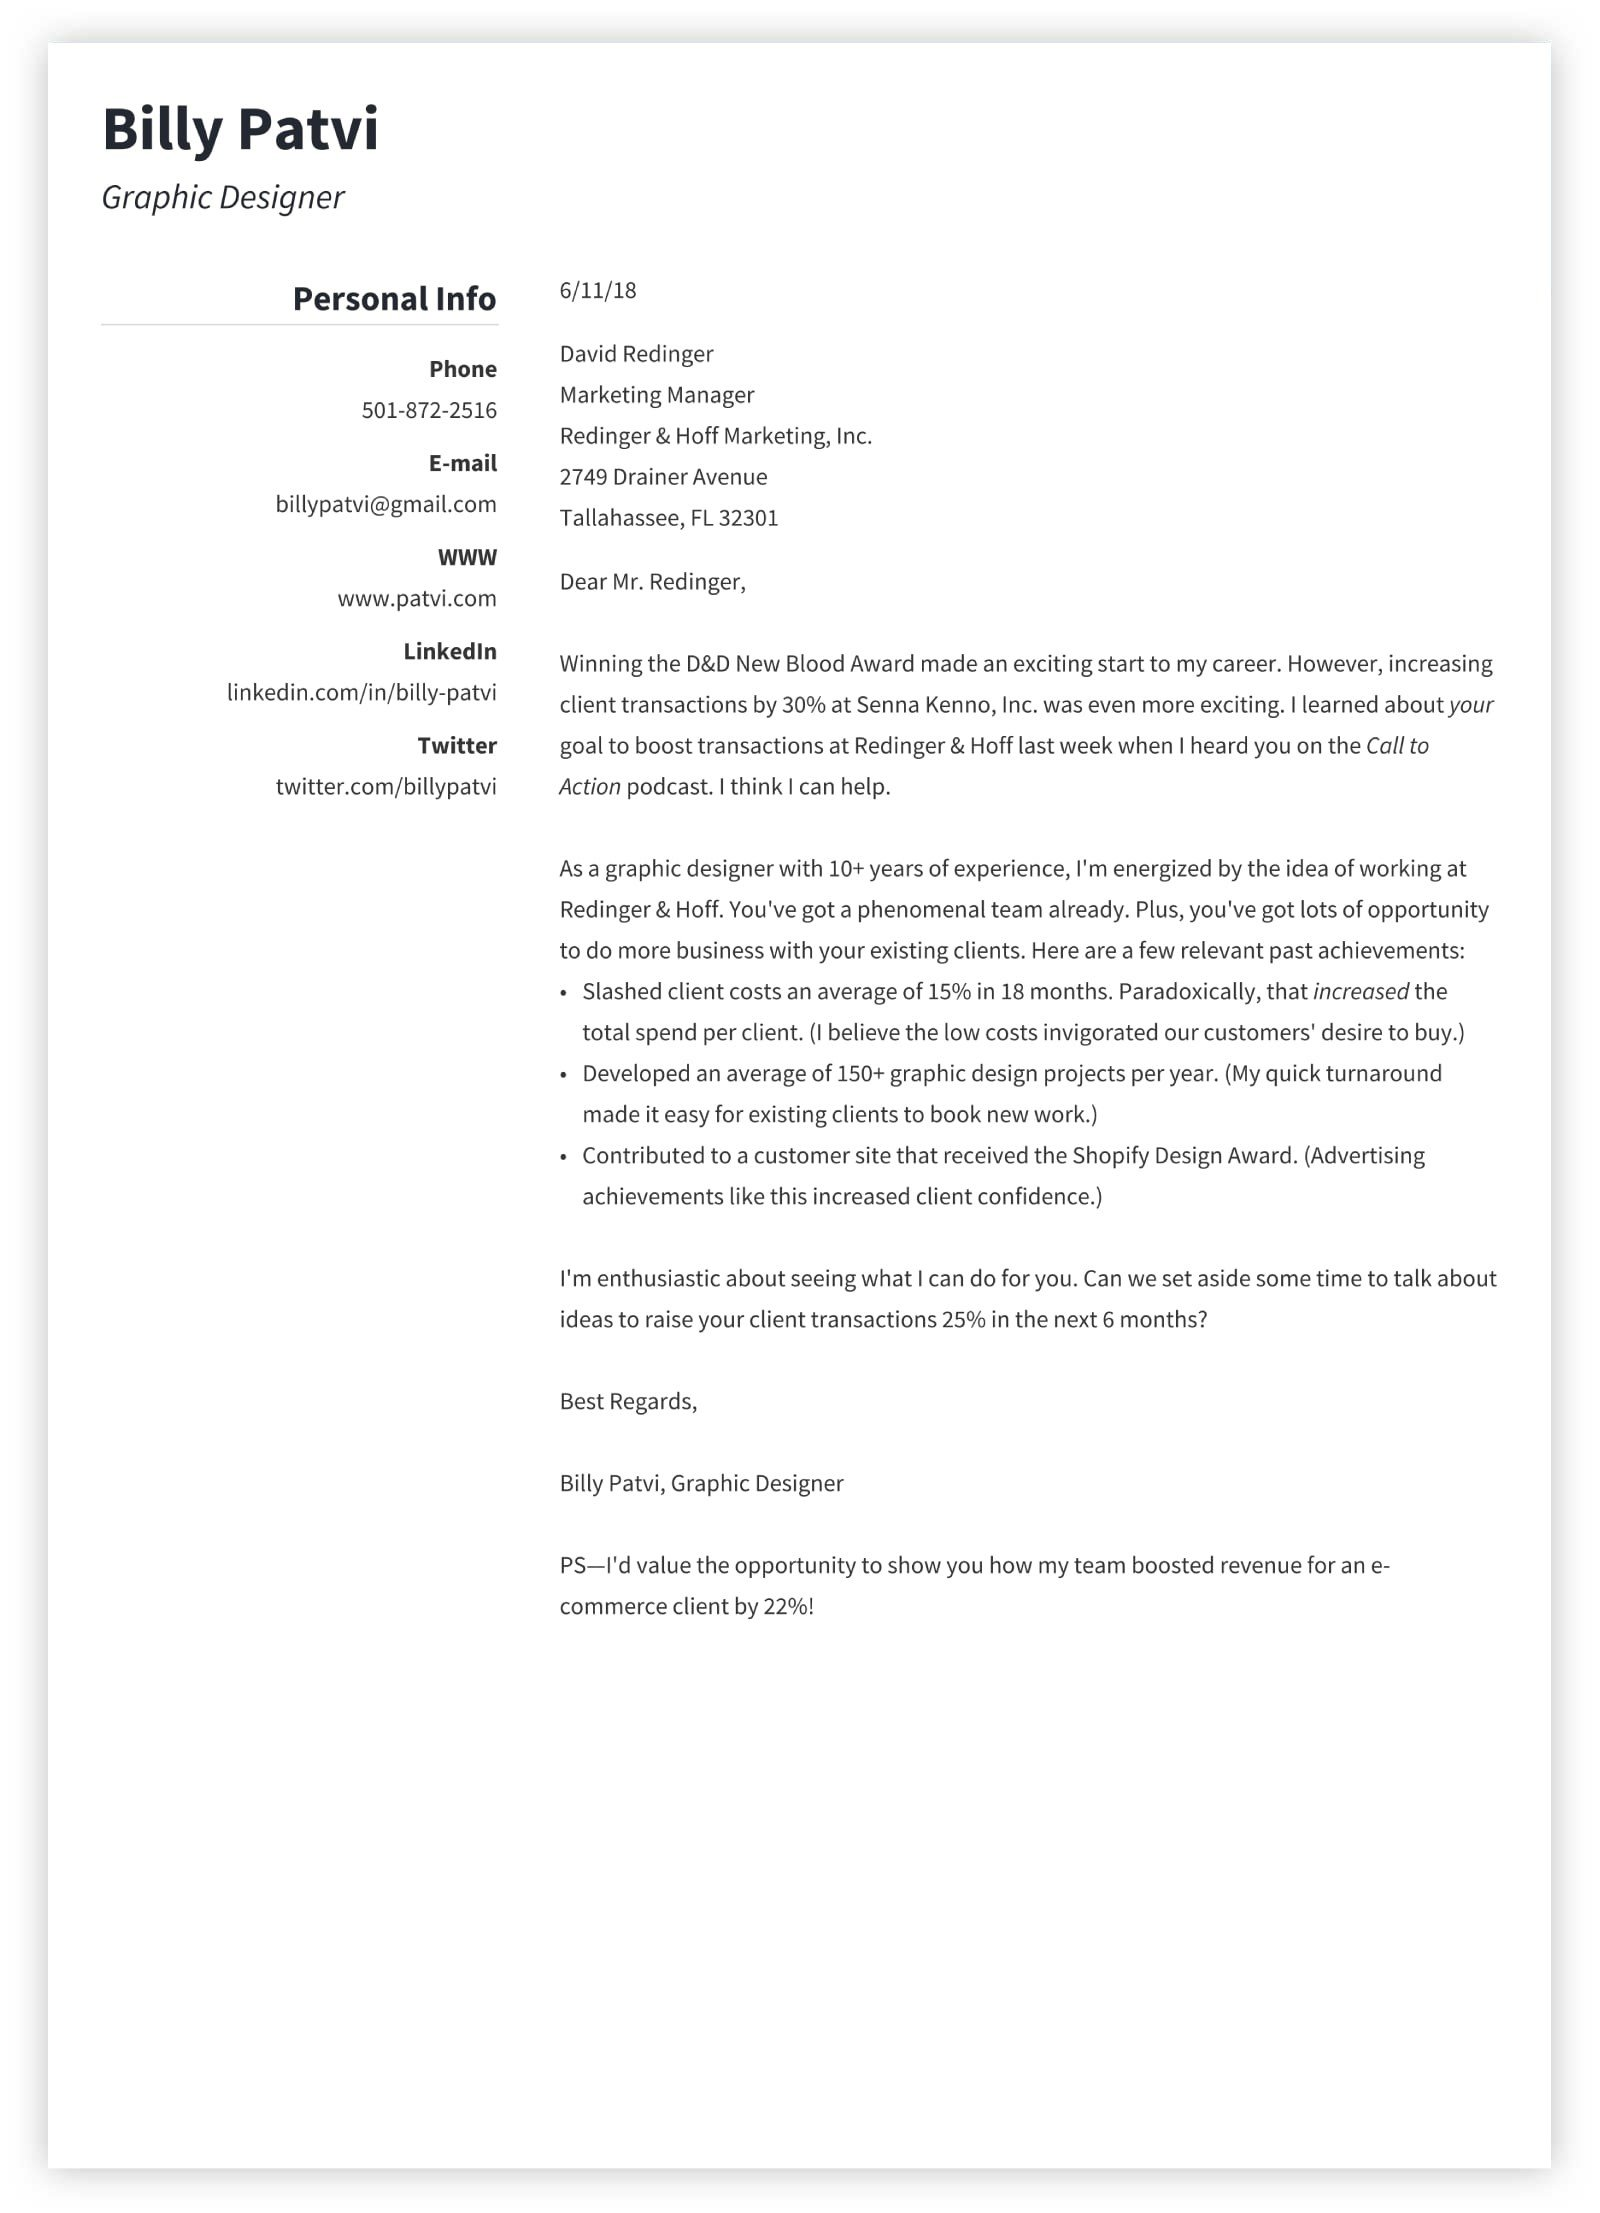 resume cover letter for any open position